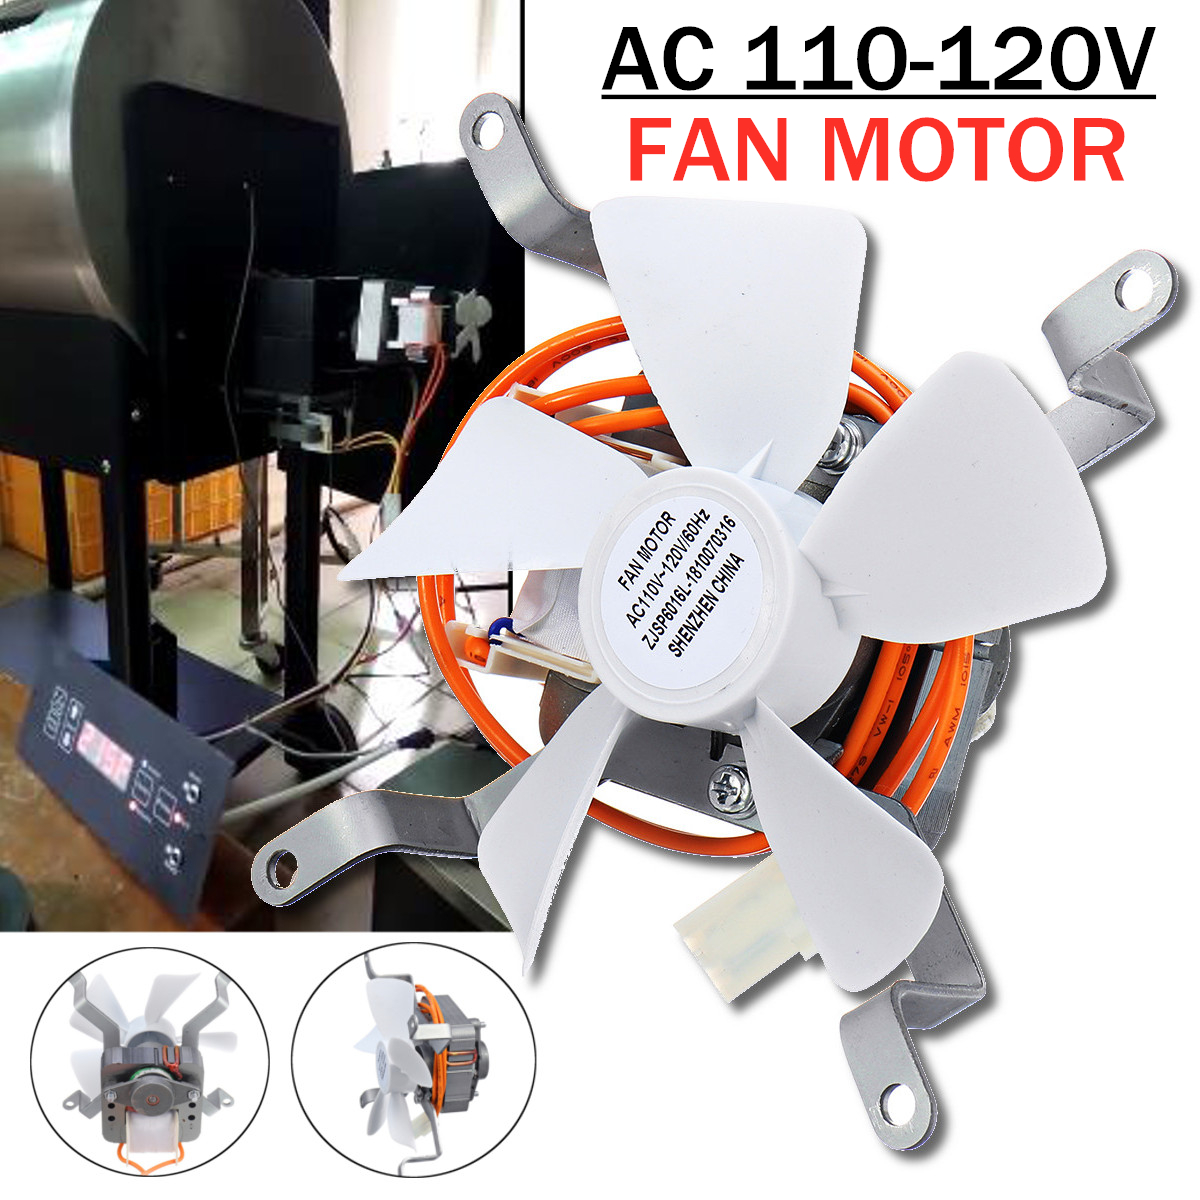 Replacement Induction Fan Part For Traeger Electric Wood ...